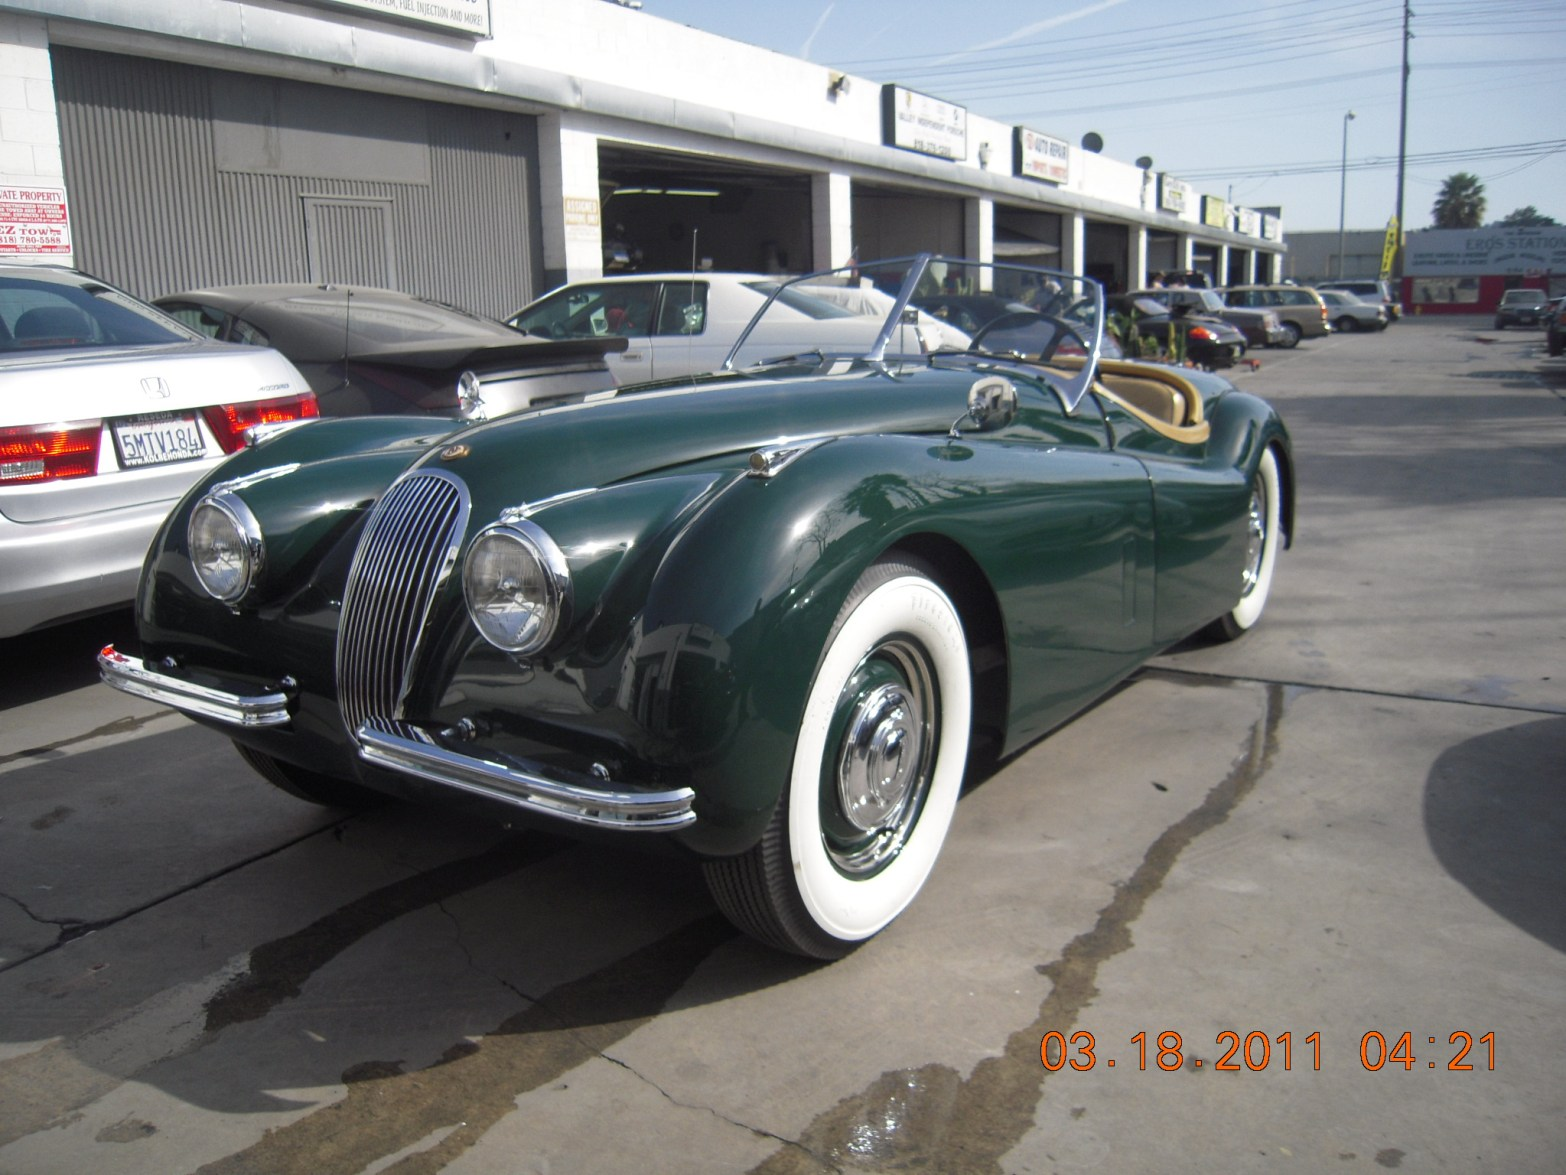 west-coast-body-and-paint-green-jaguar-xk120-34